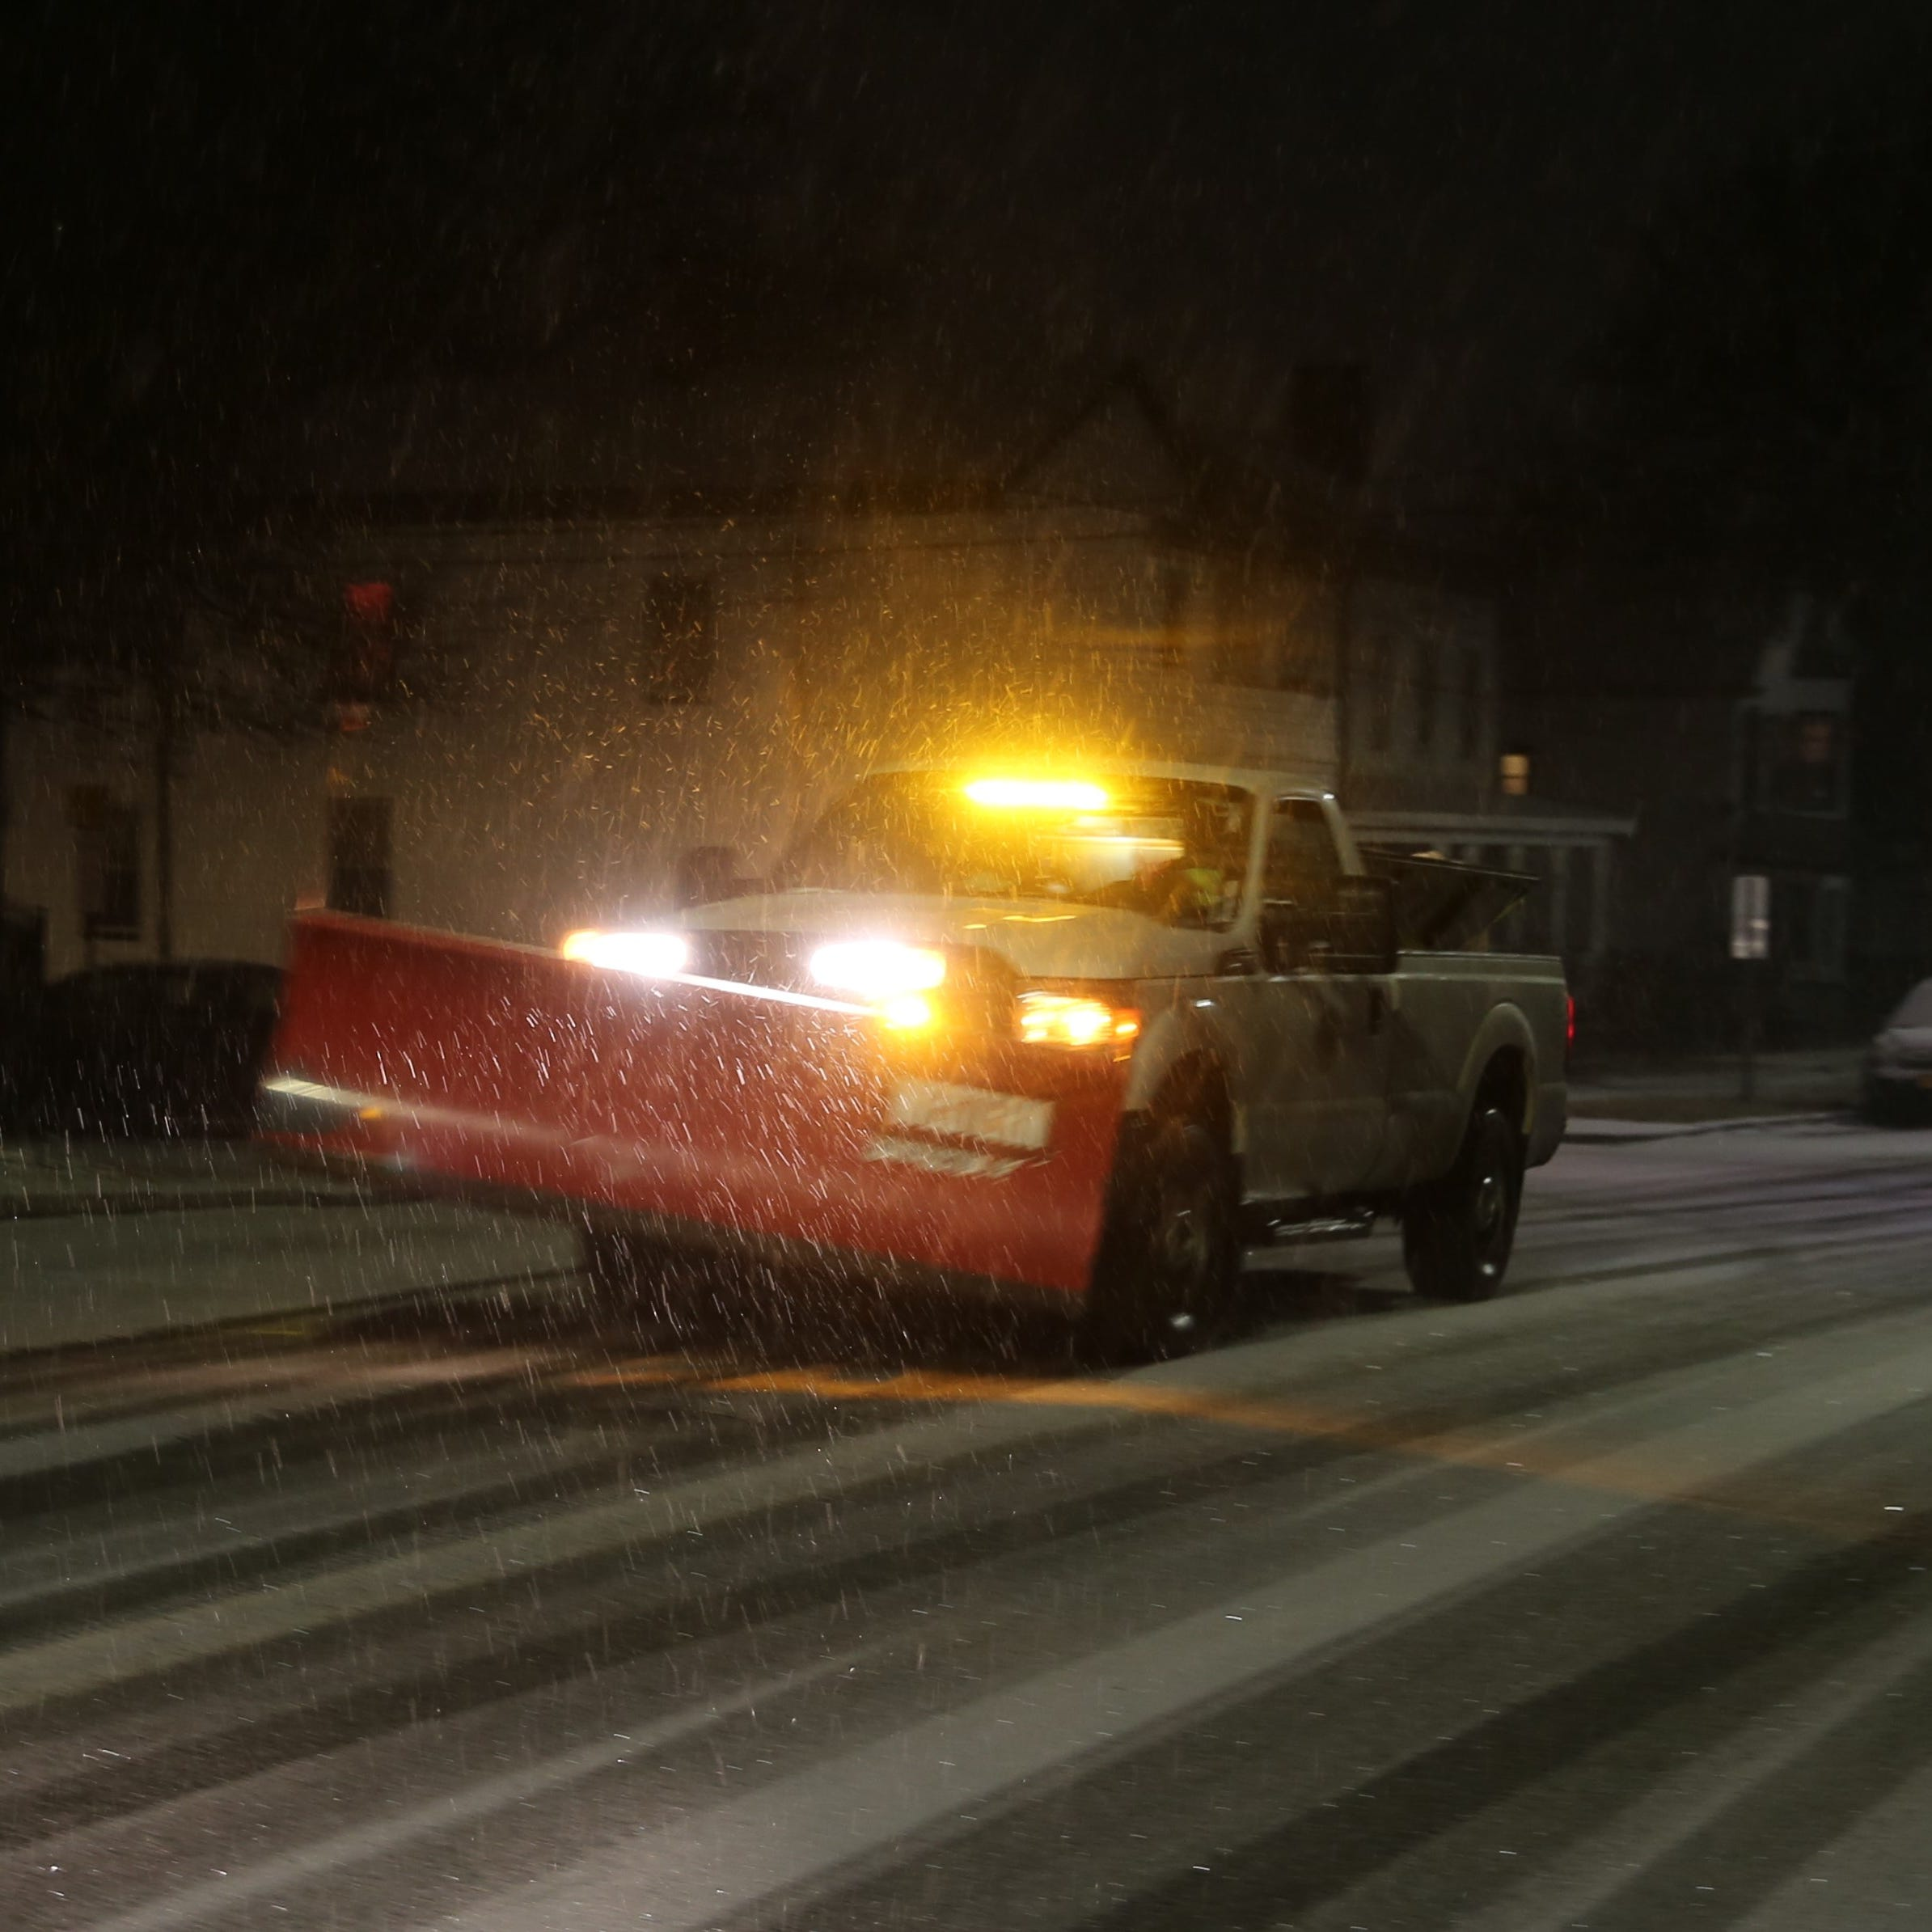 A snow plow truck drives through the City of Poughkeepsie on Saturday night as snow begins to fall. The heaviest snow is expected to occur between 8 and 10 p.m. Saturday.